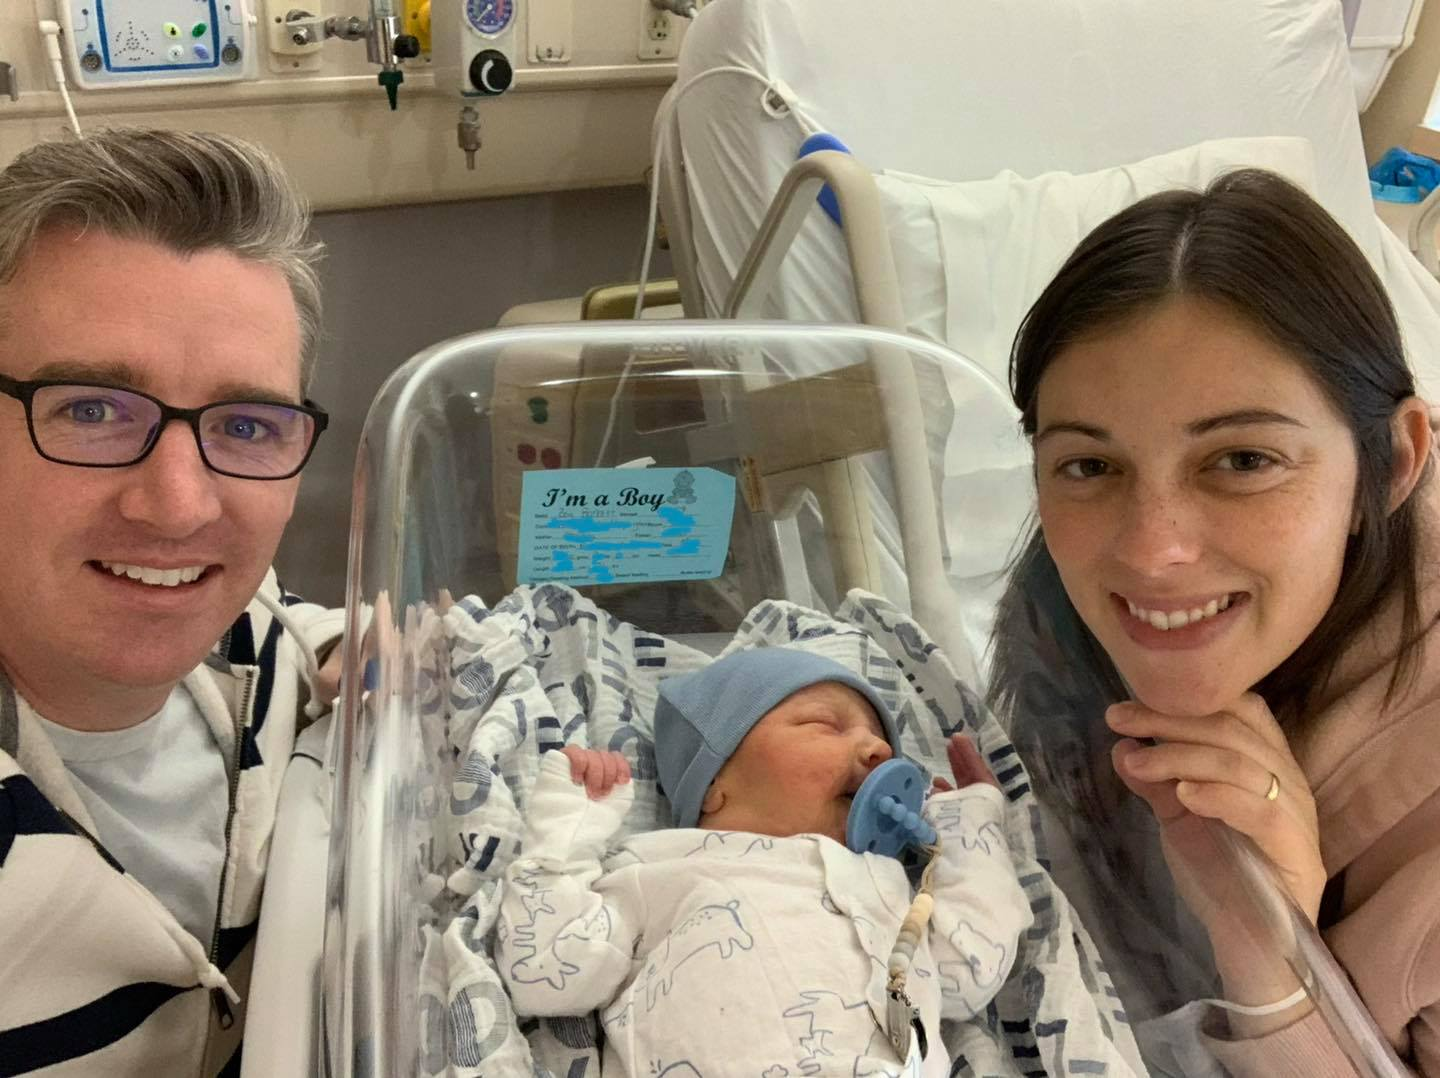 Shout out to Brockville General Hospital for their support during the birth of son Nathan